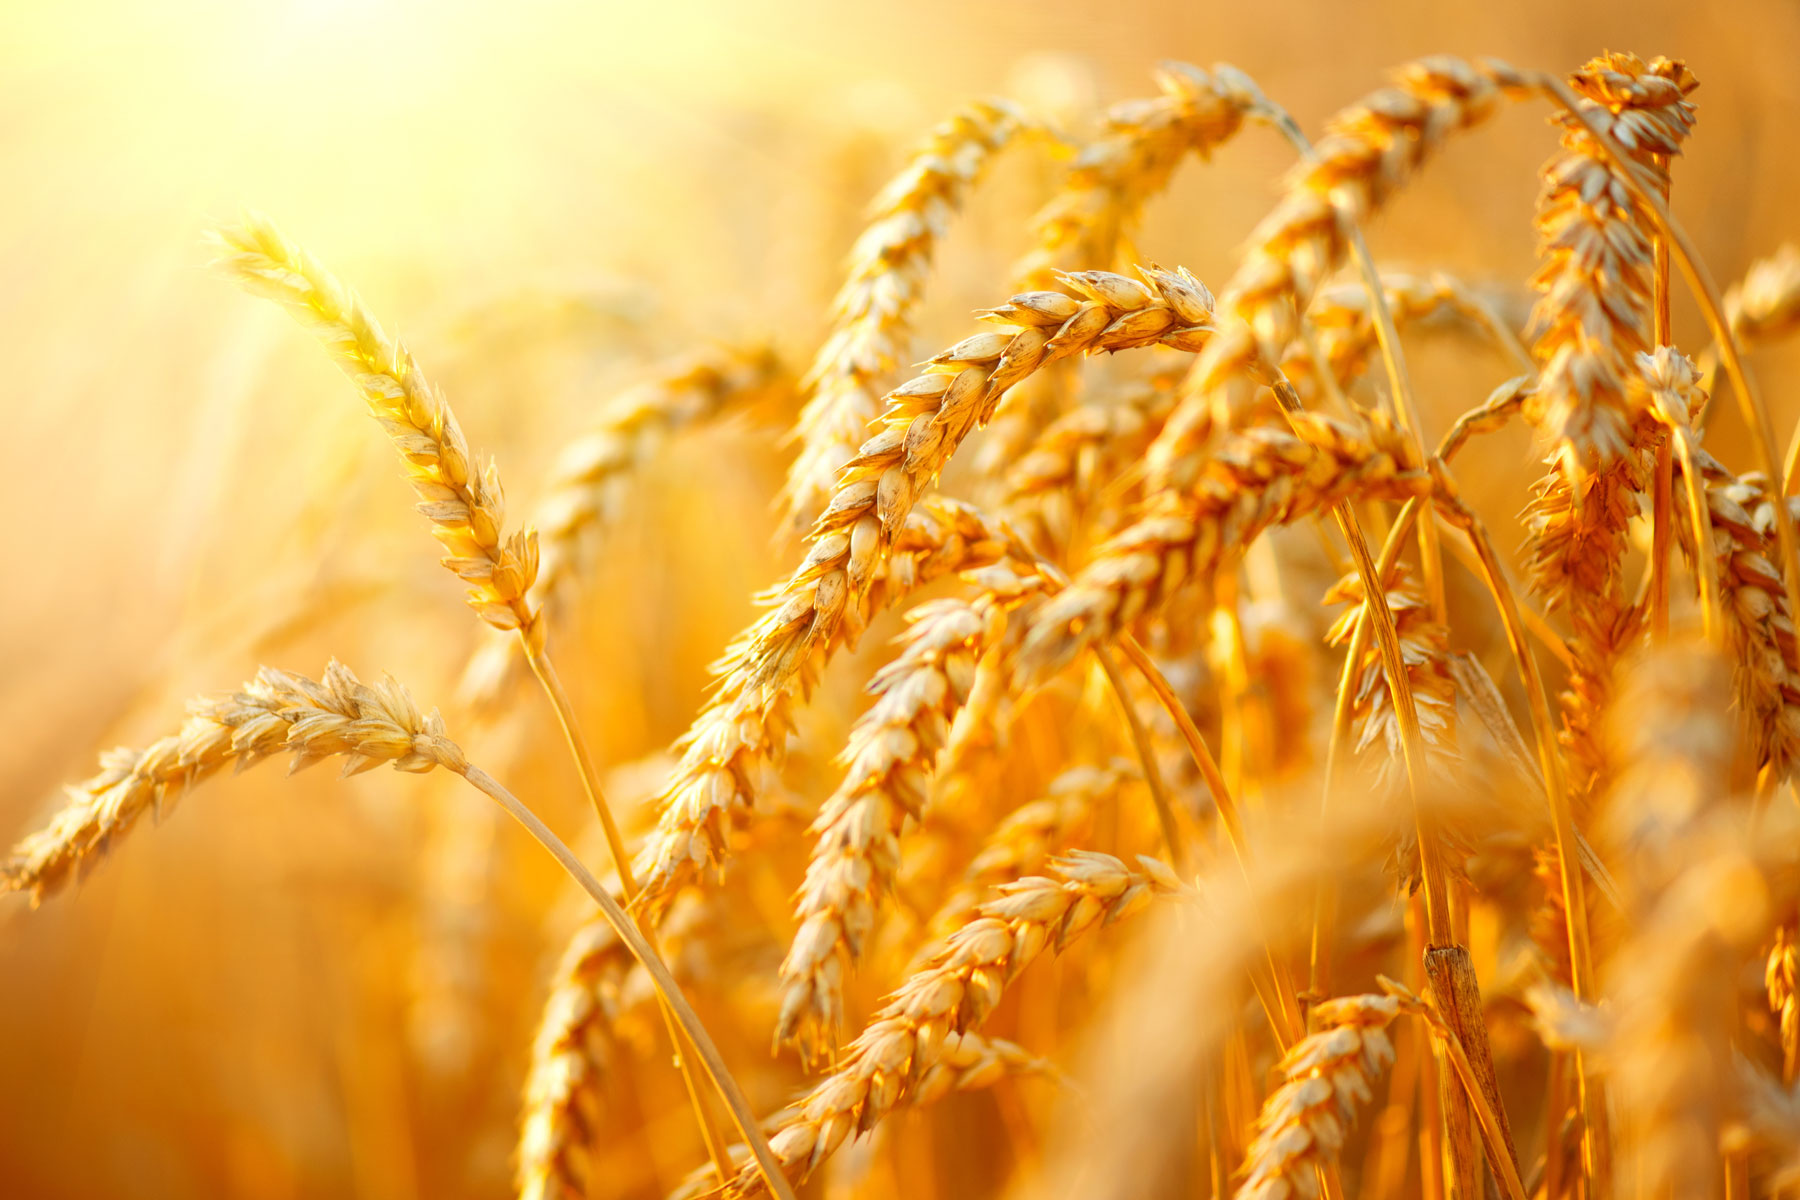 Improving photosynthesis to increase wheat yield